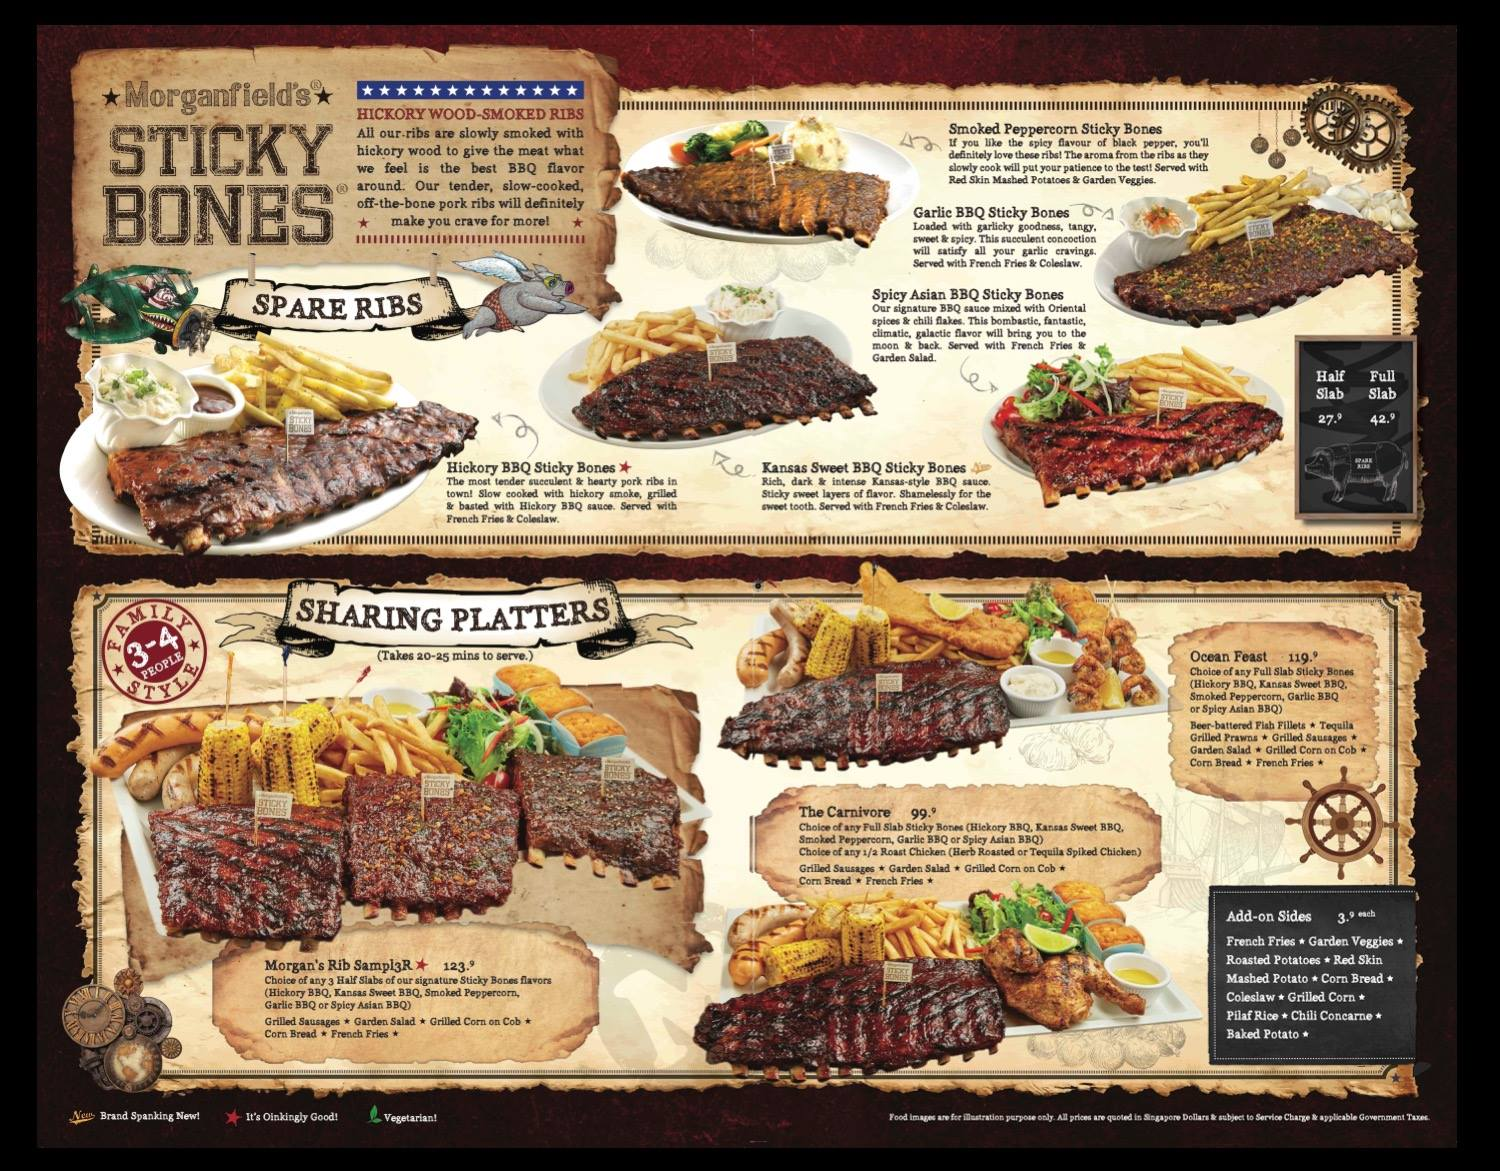 Morganfield's - Sticky Bones and Sharing Platters Menu - TREAT